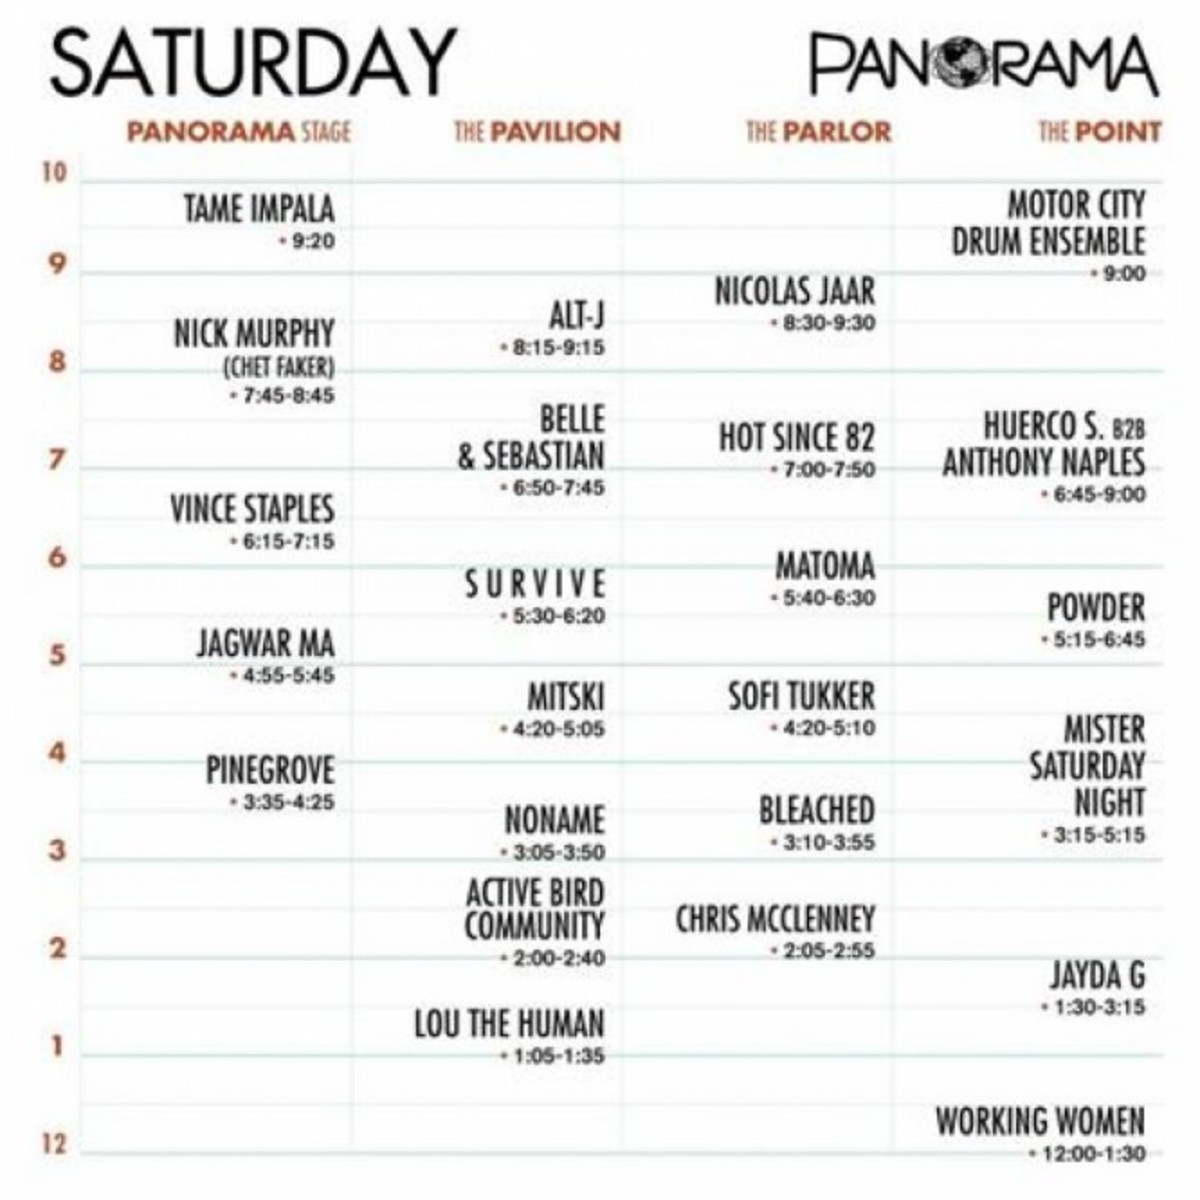 Panorama Schedule - Day 2